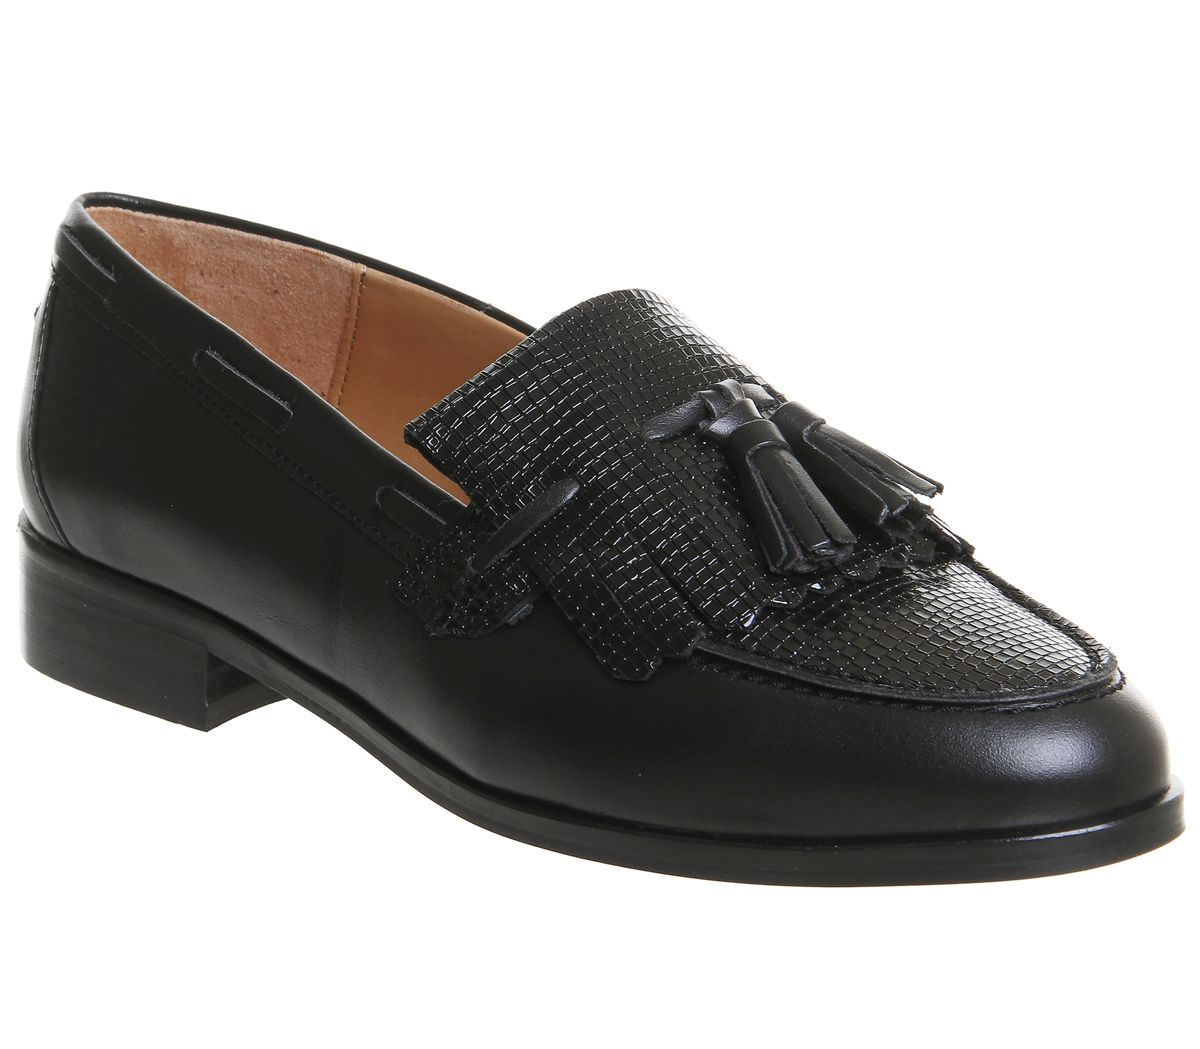 Office Extravaganza 2 Loafers, Black Leather